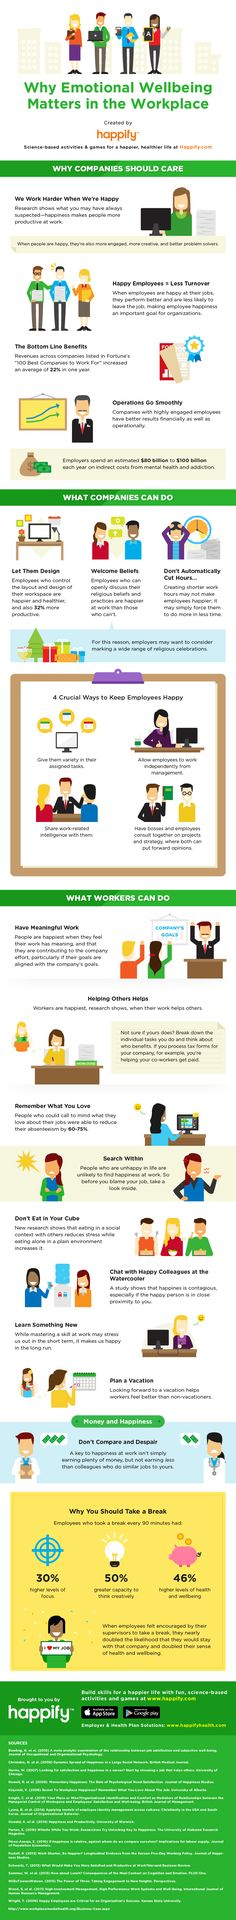 Why Emotional Well-Being Matters at Work [Infographic], via @HubSpot